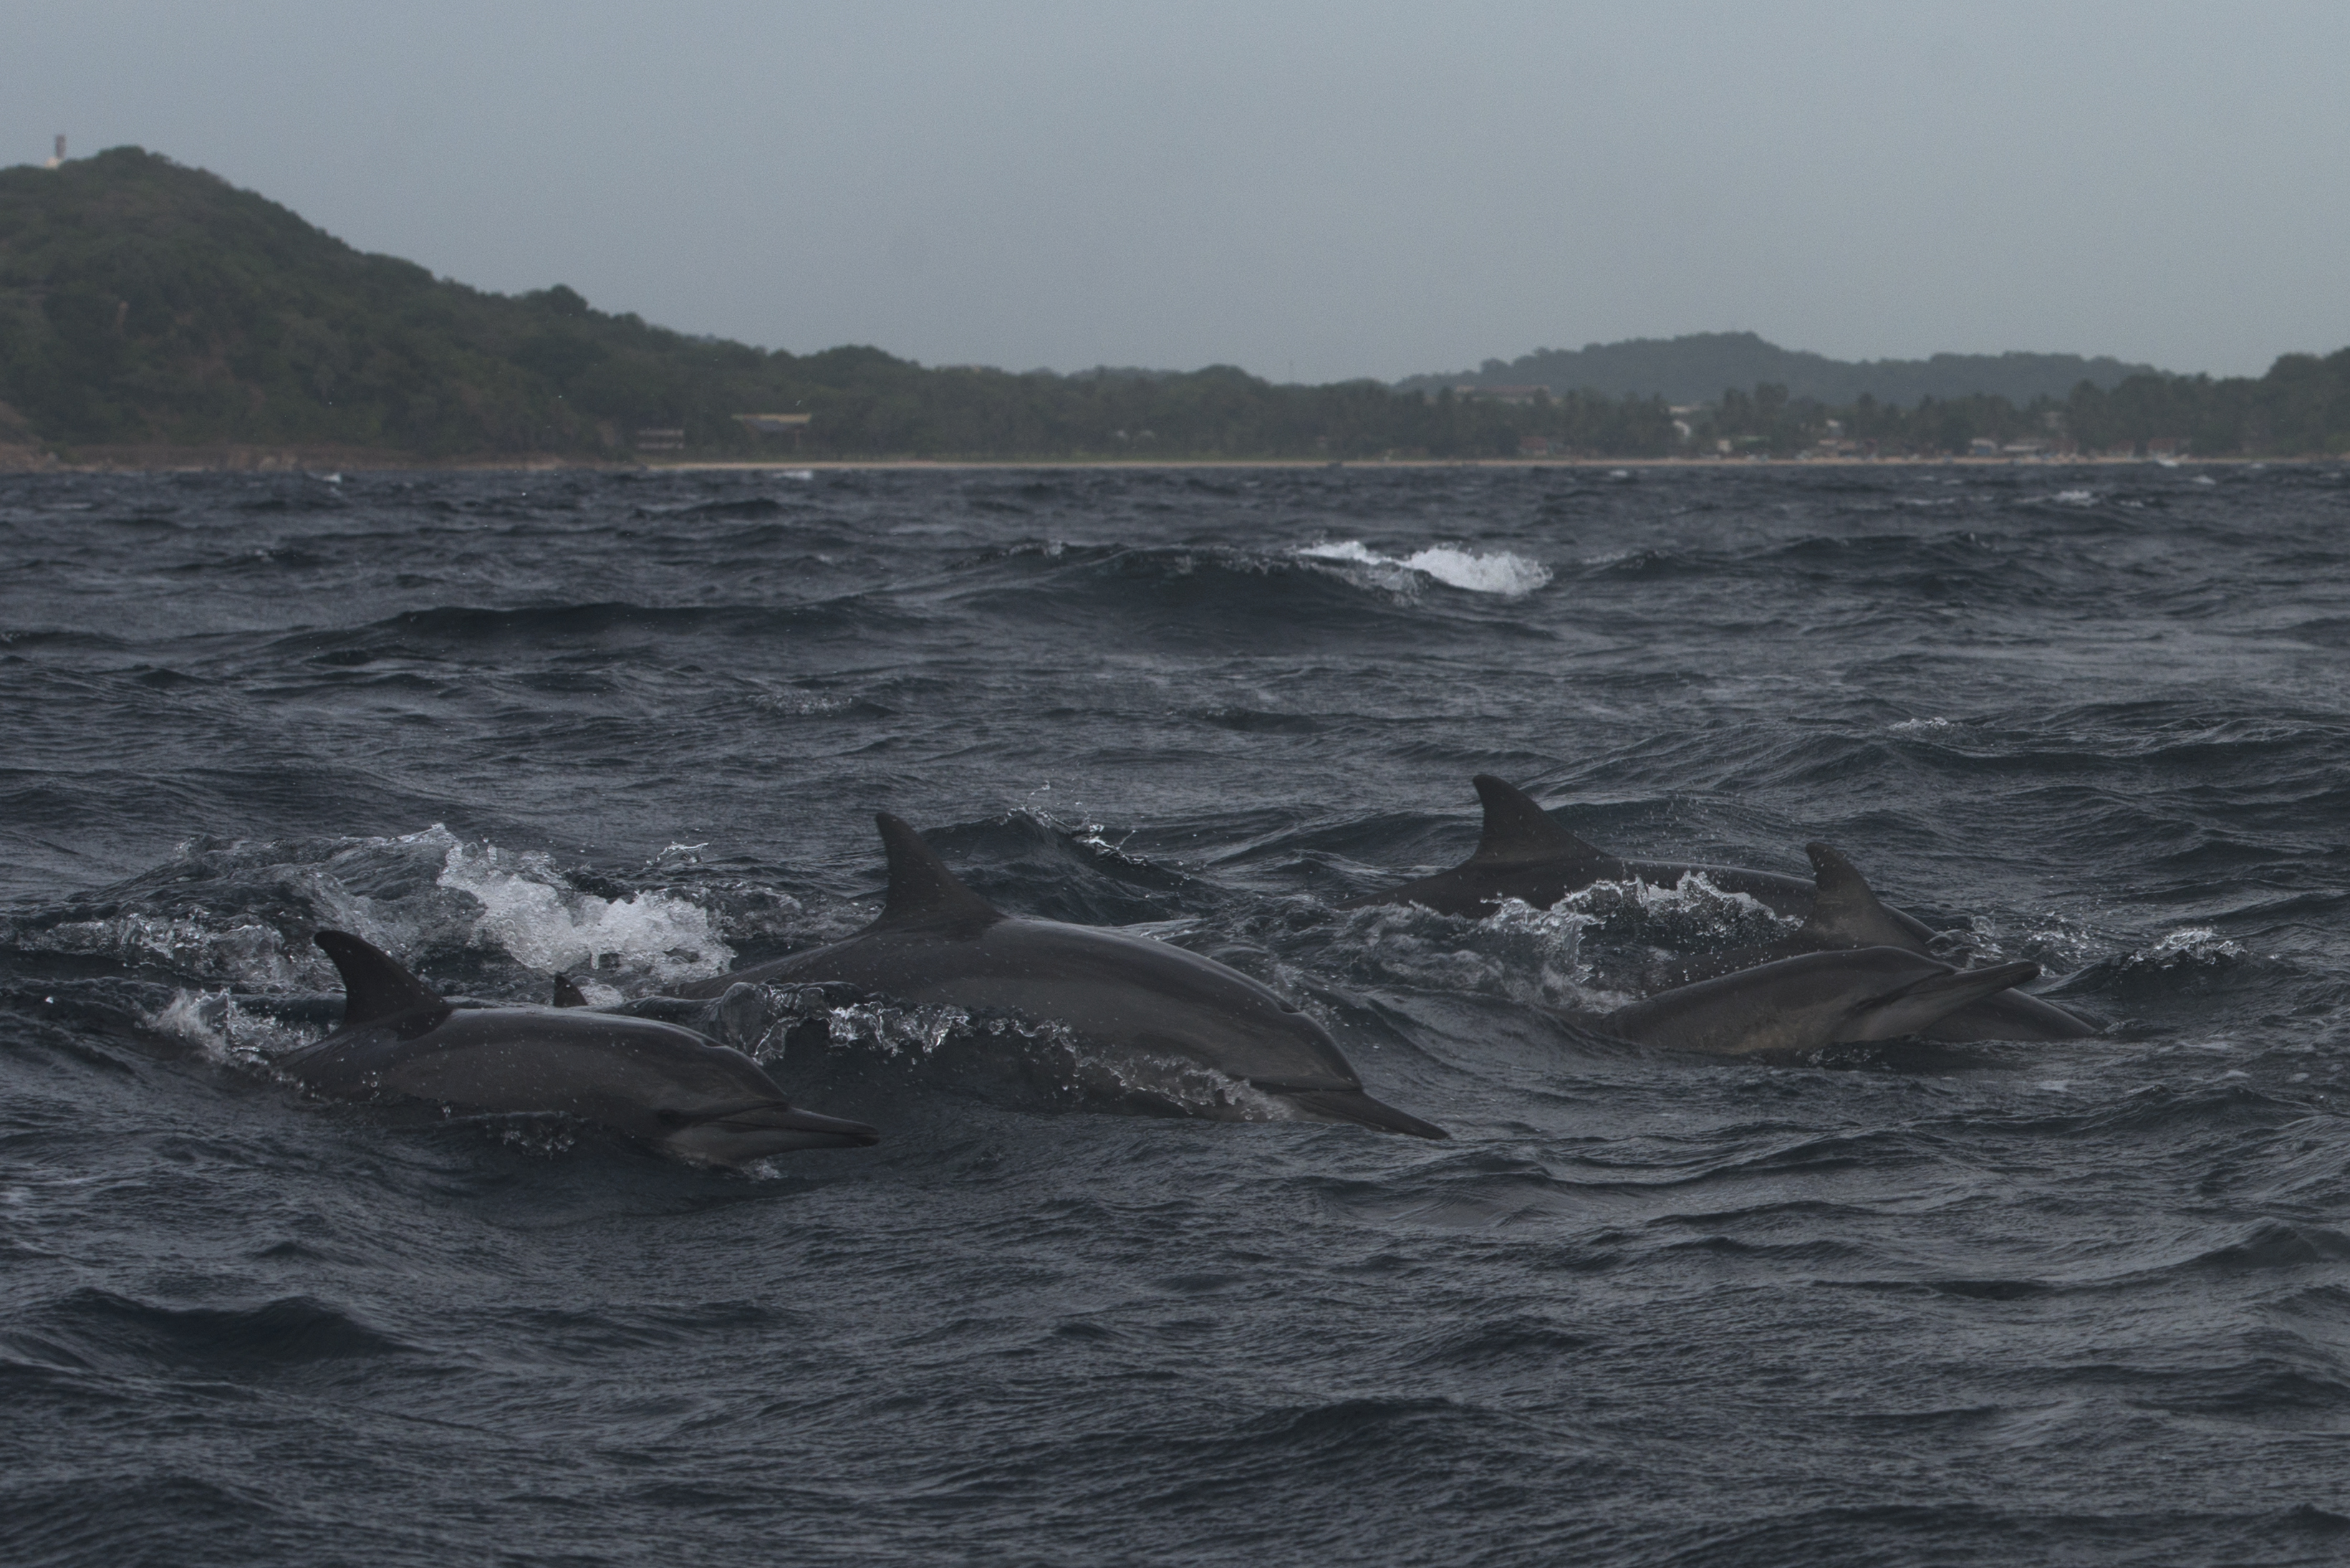 Dolphins_5